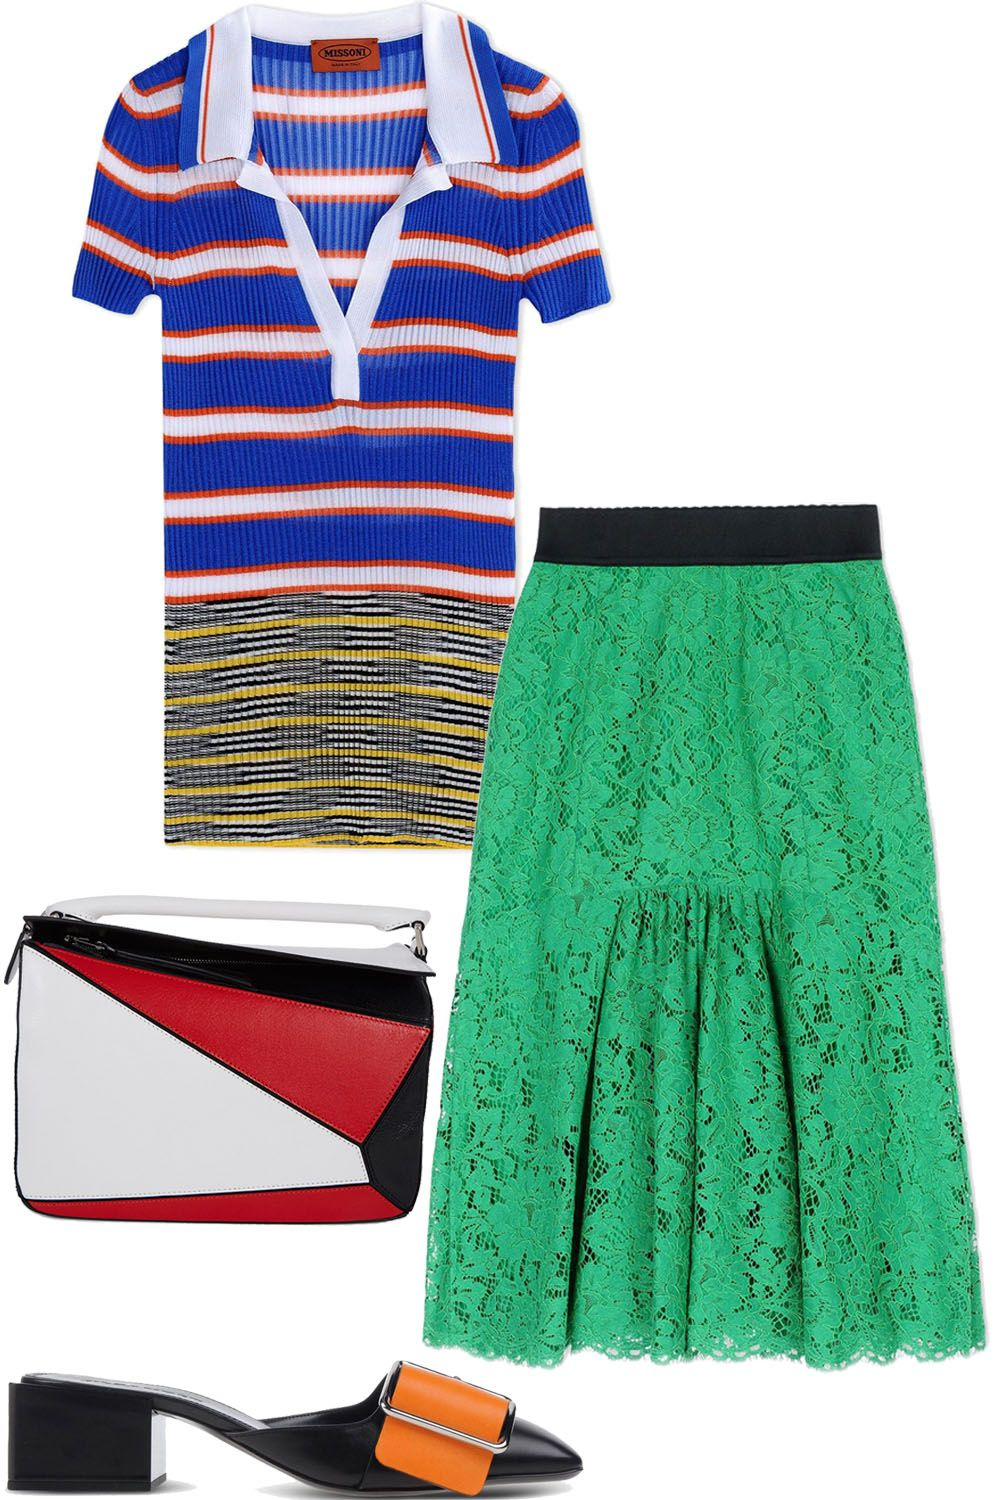 """<p>Don't fear color, it's spring after all. When it comes to the nine-to-five, opt for separates and accessories that can add just a hint of hue.</p><p><br></p><p><em><strong>Missoni</strong> top, $860, <strong><a href=""""https://shop.harpersbazaar.com/designers/m/missoni/short-sleeve-striped-polo-8859.html"""" target=""""_blank"""">shopBAZAAR.com</a></strong></em><em>&#x3B; <strong>Dolce & Gabbana</strong> skirt, $2,295, <strong><a href=""""https://shop.harpersbazaar.com/designers/d/dolce-and-gabbana/green-lace-skirt-9011.html"""" target=""""_blank"""">shopBAZAAR.com</a></strong>&#x3B; <strong>Jil Sander</strong> sandal, $680, <strong><a href=""""https://shop.harpersbazaar.com/designers/j/jil-sander/black-and-orange-buckle-slip-on-9004.html"""" target=""""_blank"""">shopBAZAAR.com</a></strong></em><span class=""""redactor-invisible-space""""><em>&#x3B; <strong>Loewe</strong> bag, $2,450, <strong><a href=""""https://shop.harpersbazaar.com/designers/l/loewe/black-red-and-white-puzzle-bag-8779.html"""" target=""""_blank"""">shopBAZAAR.com</a></strong></em><span class=""""redactor-invisible-space""""><em>.</em></span></span></p>"""